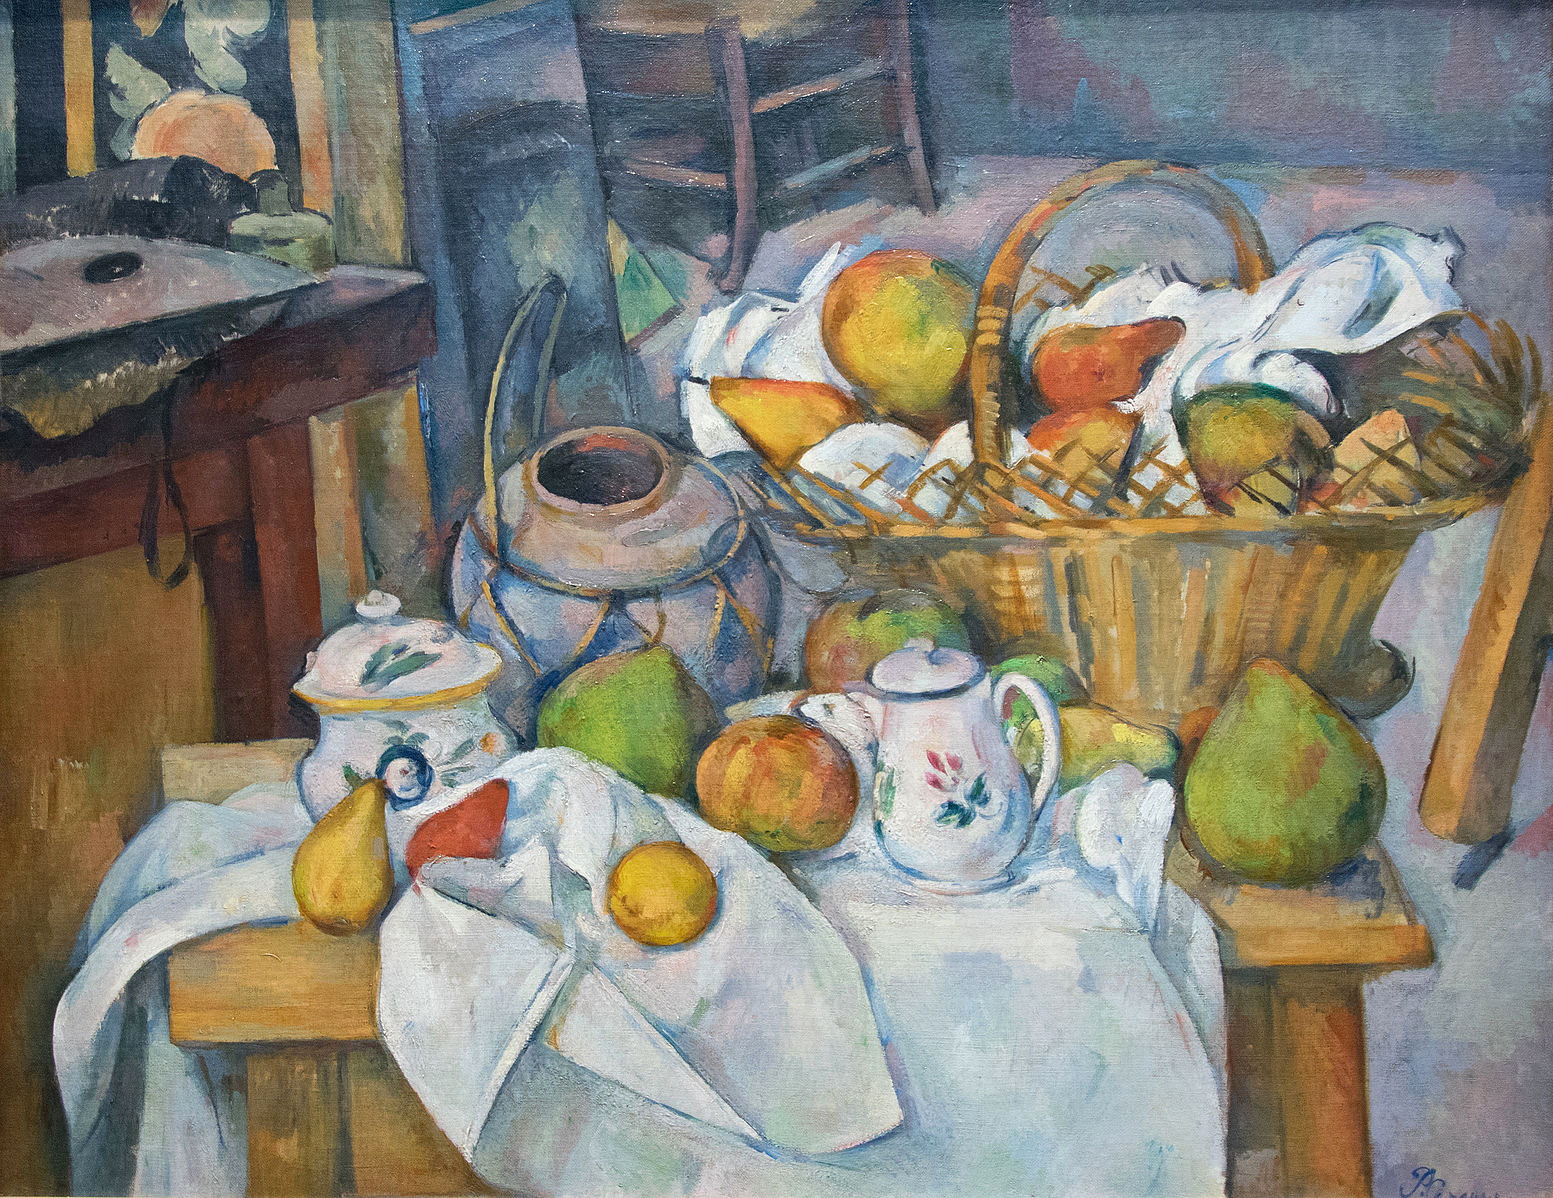 https://media.thisisgallery.com/wp-content/uploads/2018/12/paulcezanne_02.jpg